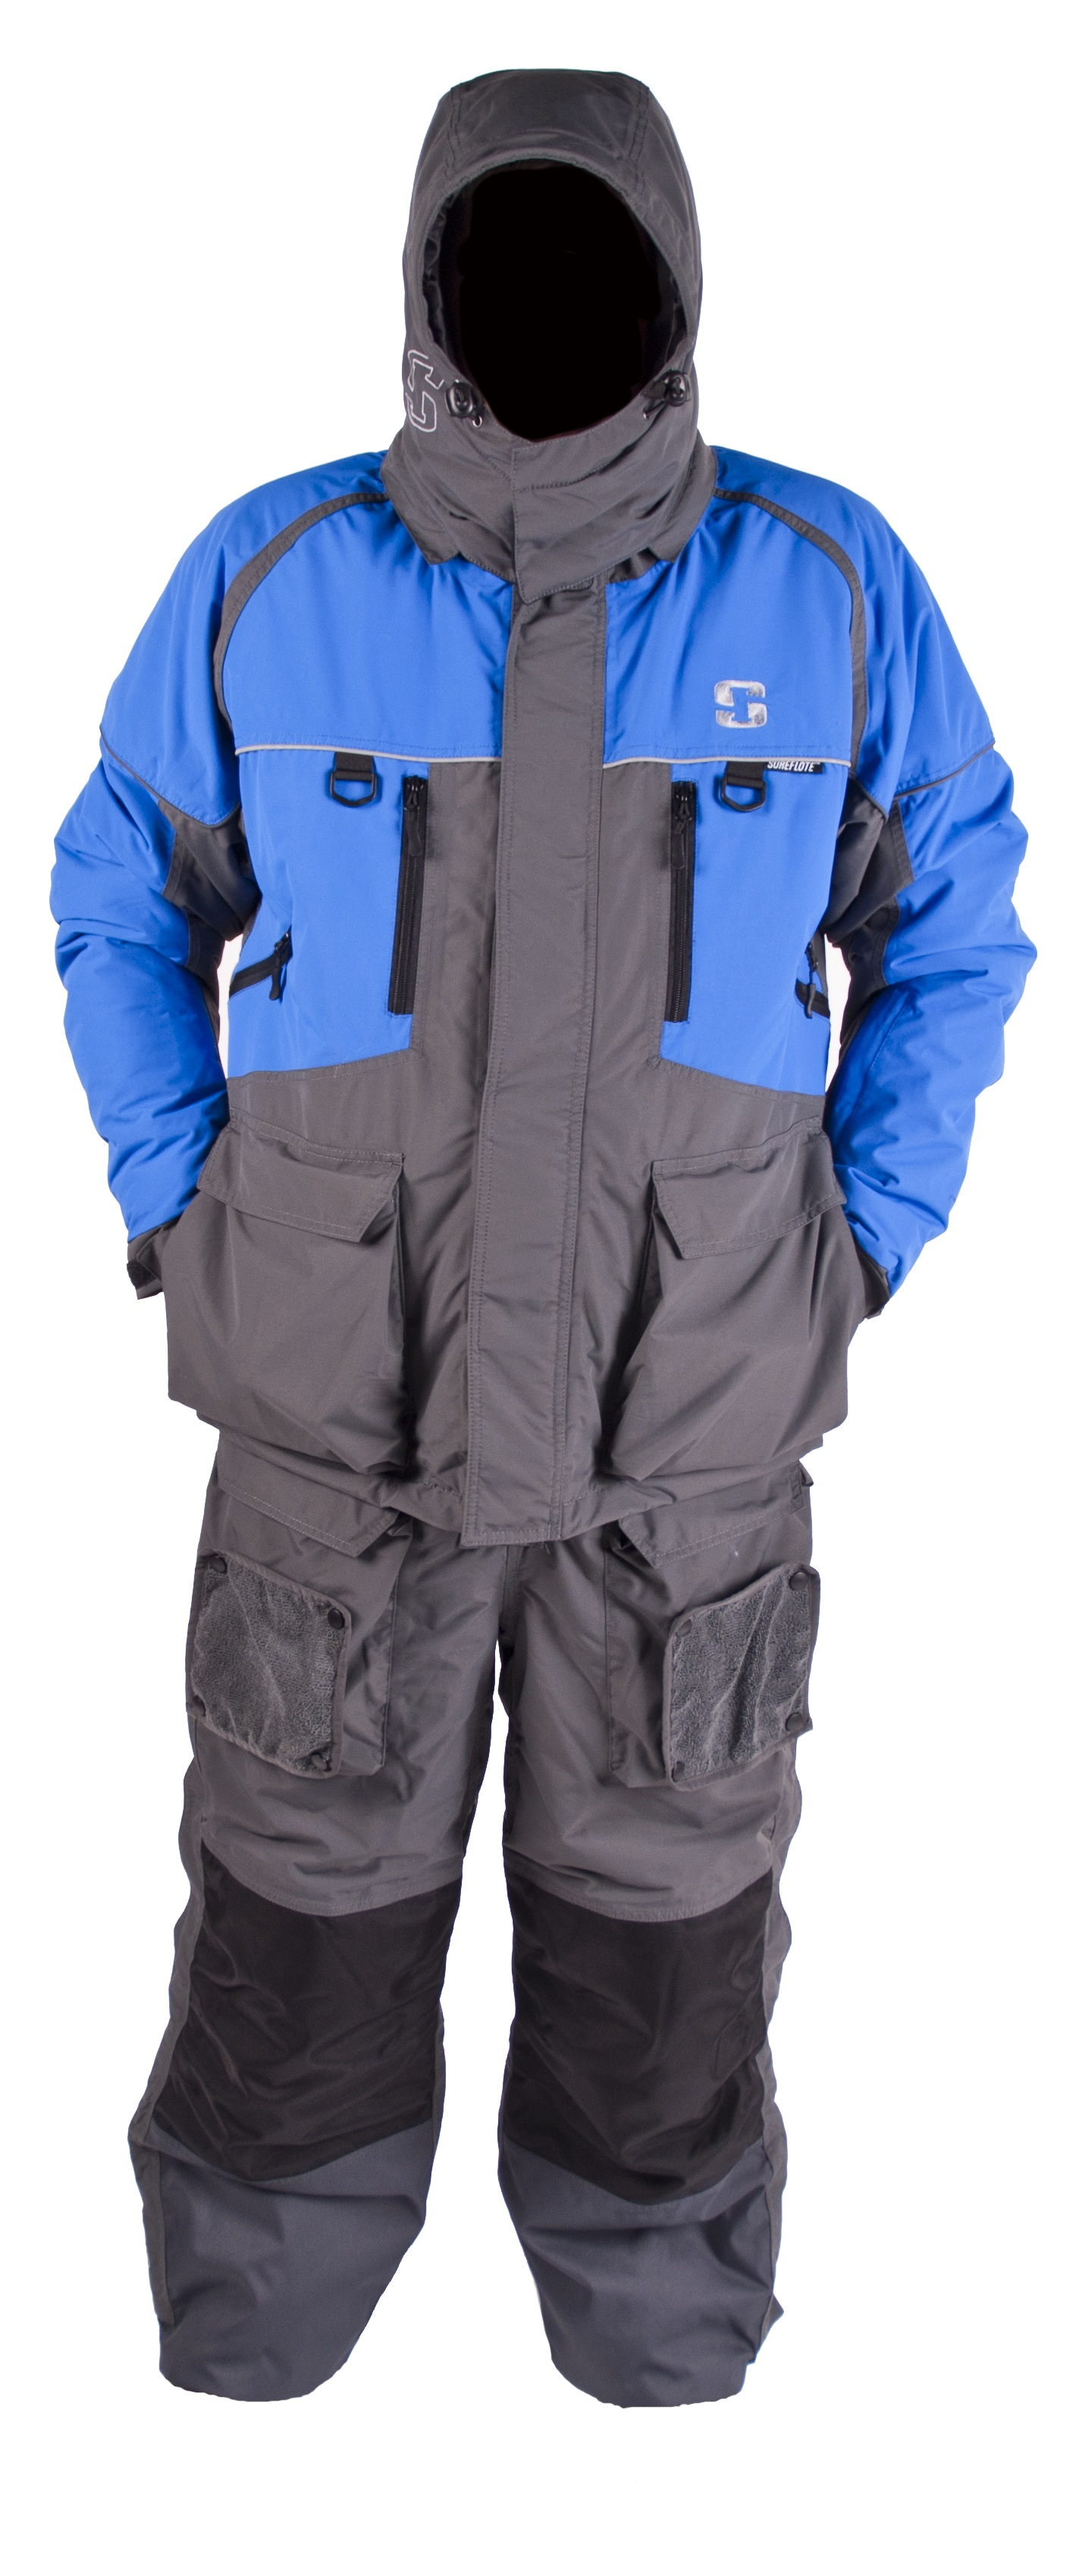 Striker ice predator suit kabele 39 s trading post for Ice fishing bibs and jacket